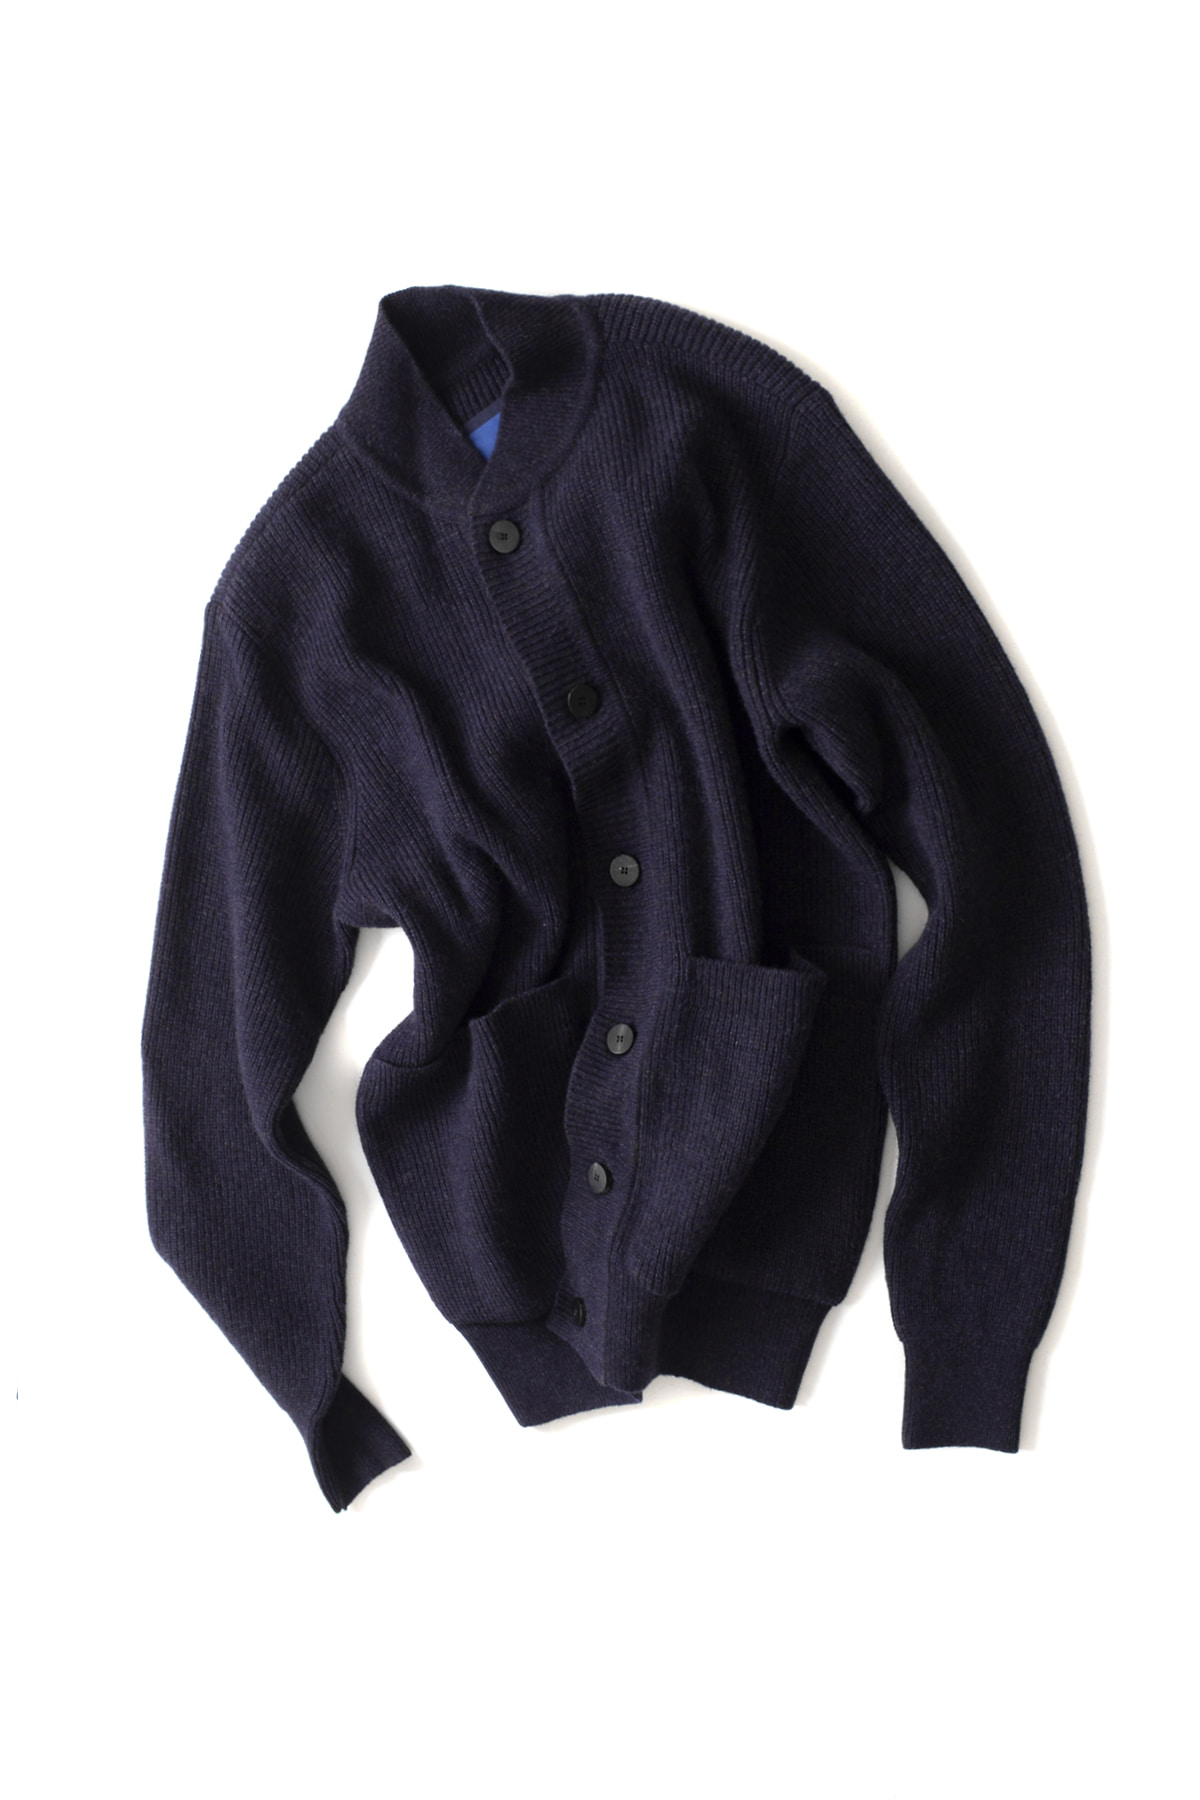 Document : The Document Knit Blouson (Navy)